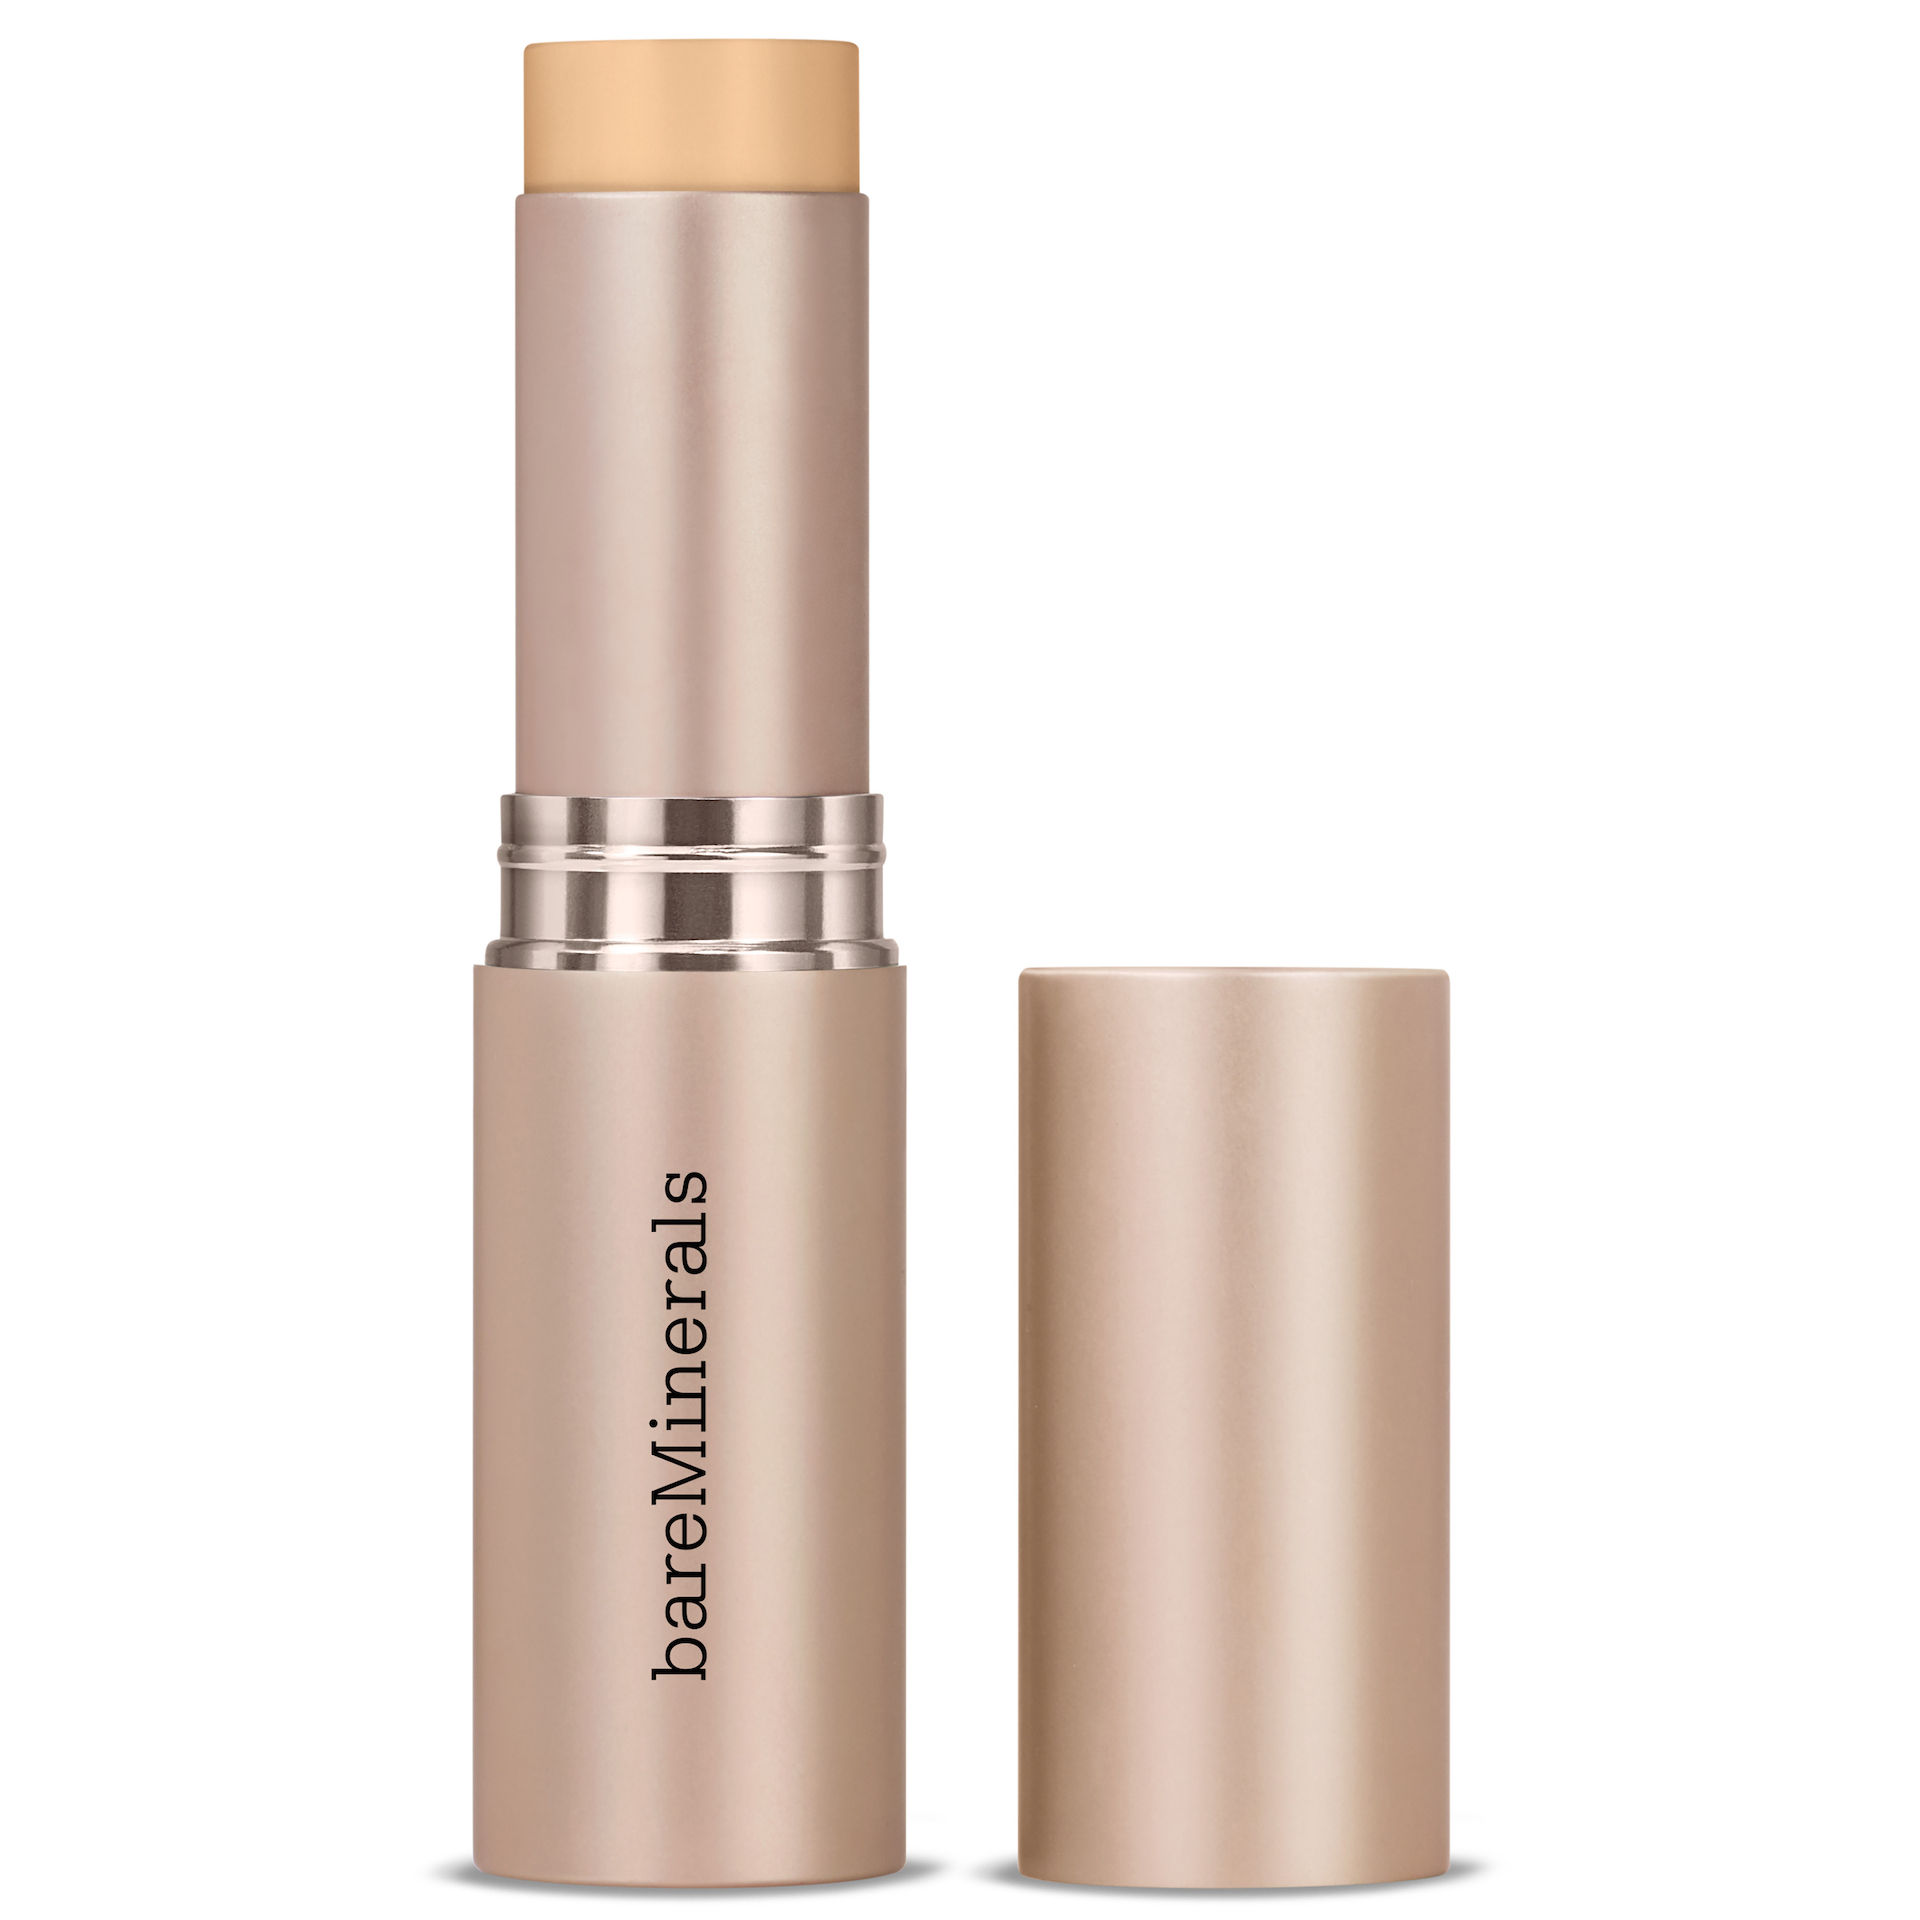 Complexion Rescue Hydrating Foundation Stick SPF 25 Buttercream 03